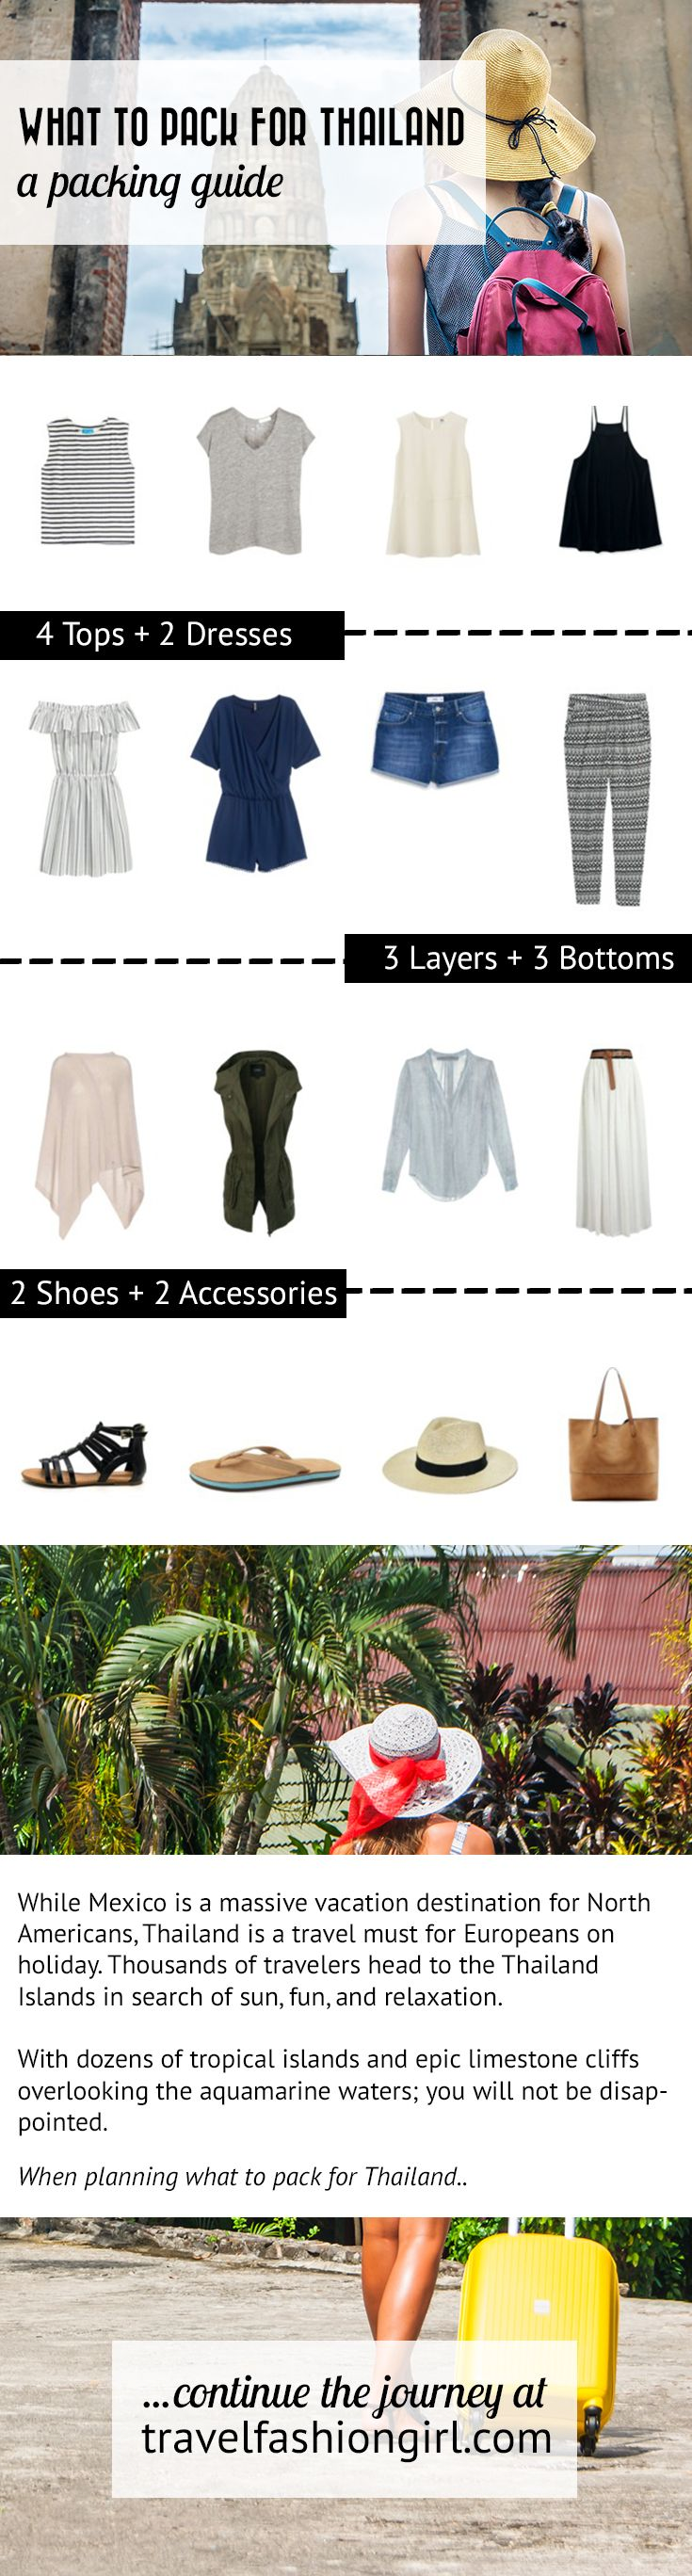 Check out this Thailand packing list If you're heading to Southeast Asia's top beaches and islands. Learn what to wear and what to leave behind! http://travelfashiongirl.com/thailand-packing-list-islands-beaches-and-buckets/ via @travlfashngirl #packing #list #travel